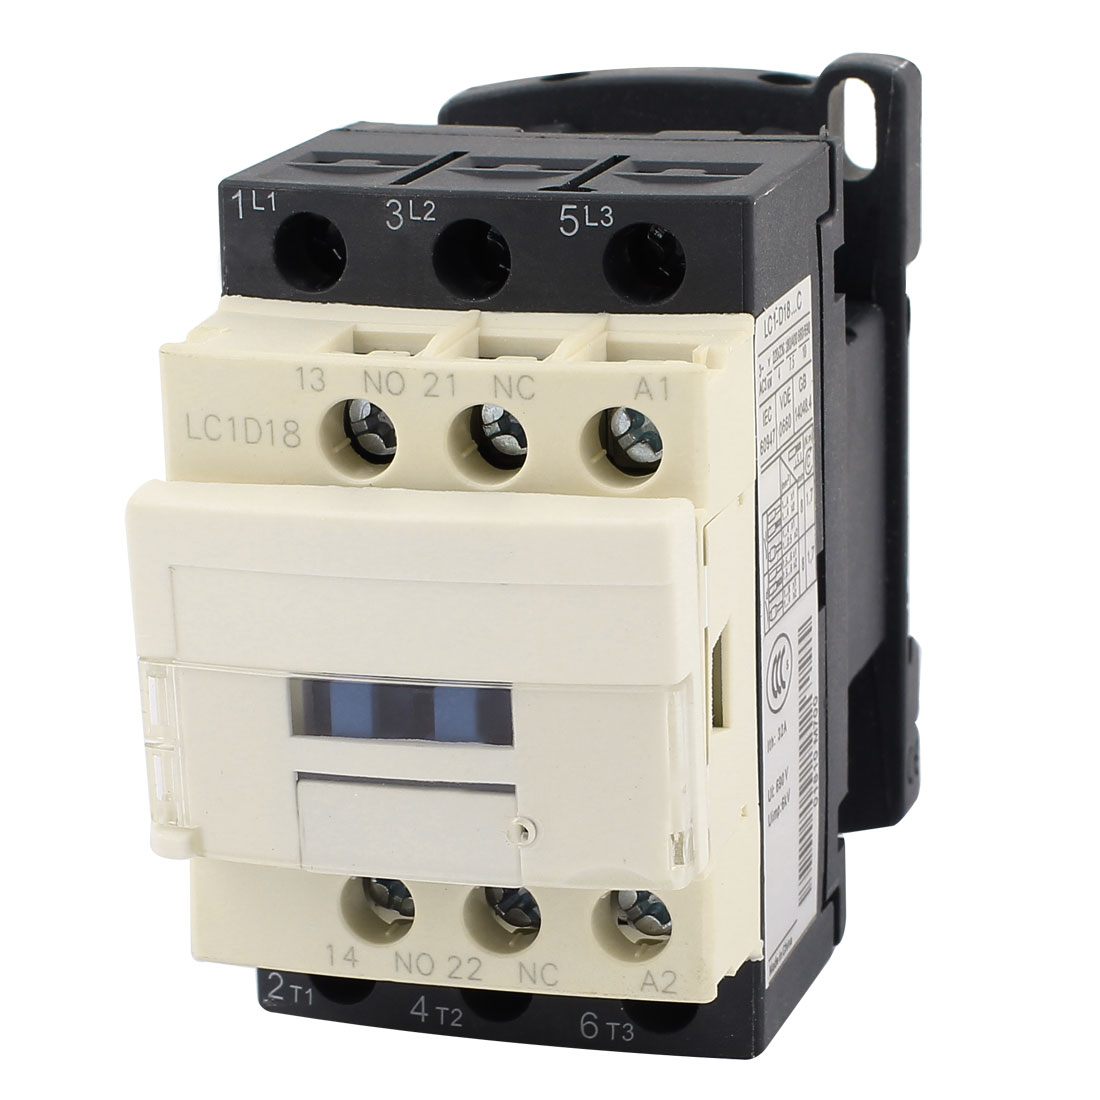 LC1D18 Motor Control AC Contactor 32A 3 Phase 380V 50/60Hz Coil